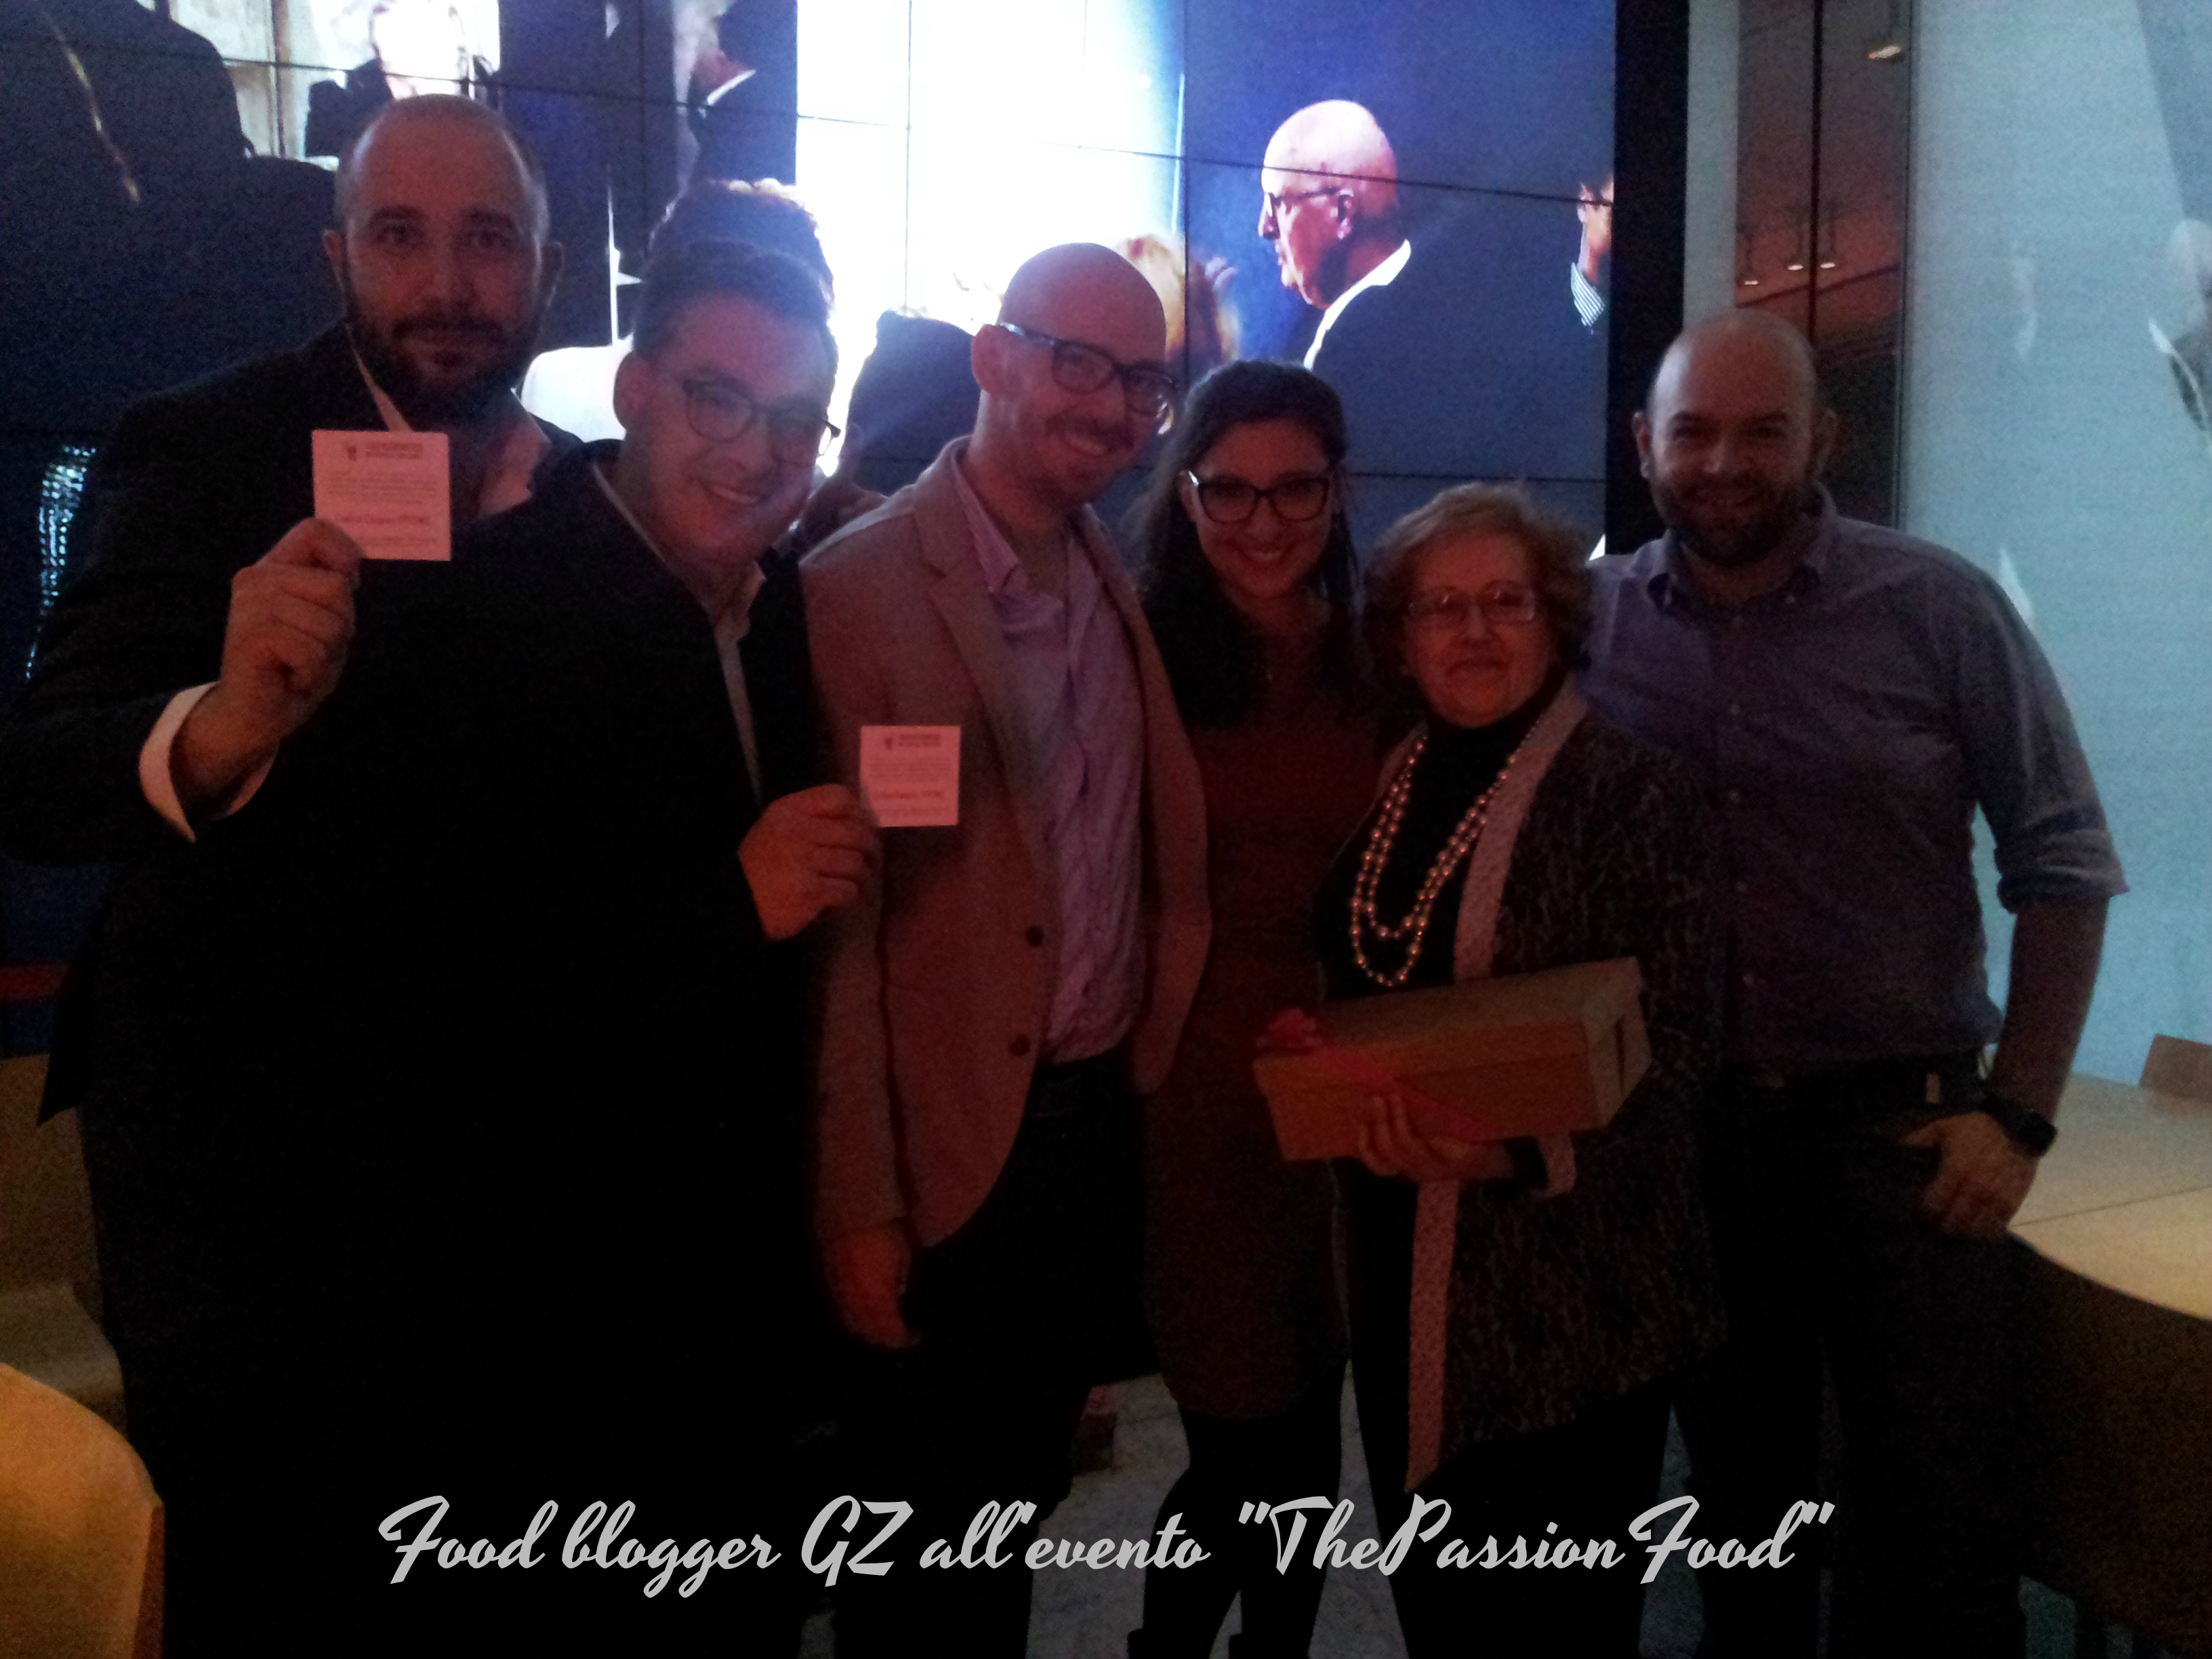 """Food blogger GZ all'evento """"ThePassionFood"""""""